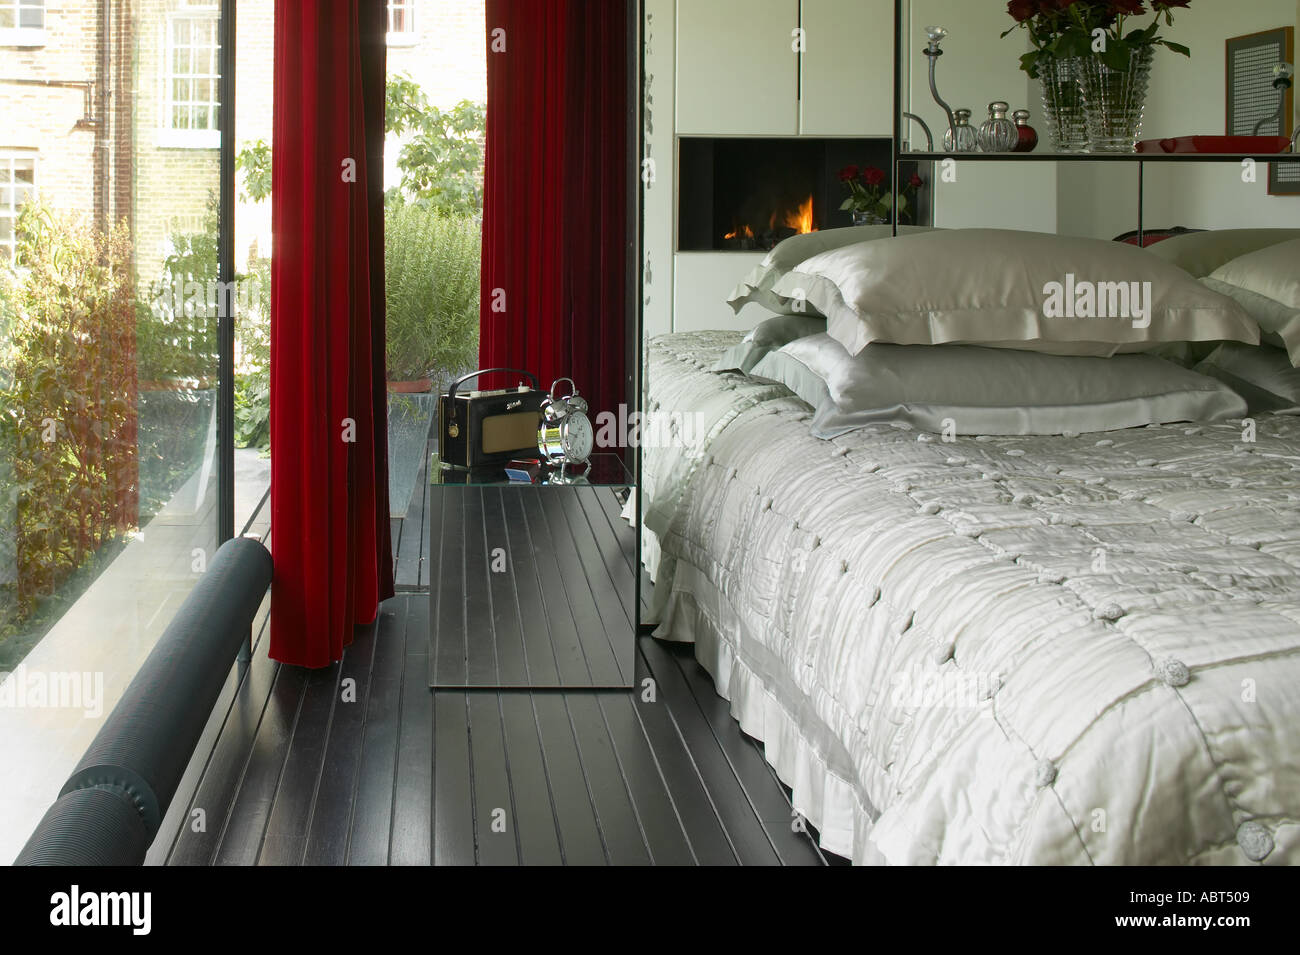 Refurbished House In Camden Town Master Bedroom With Mirrored Headboard Architect Munkenbeck And Marshall Stock Photo Alamy